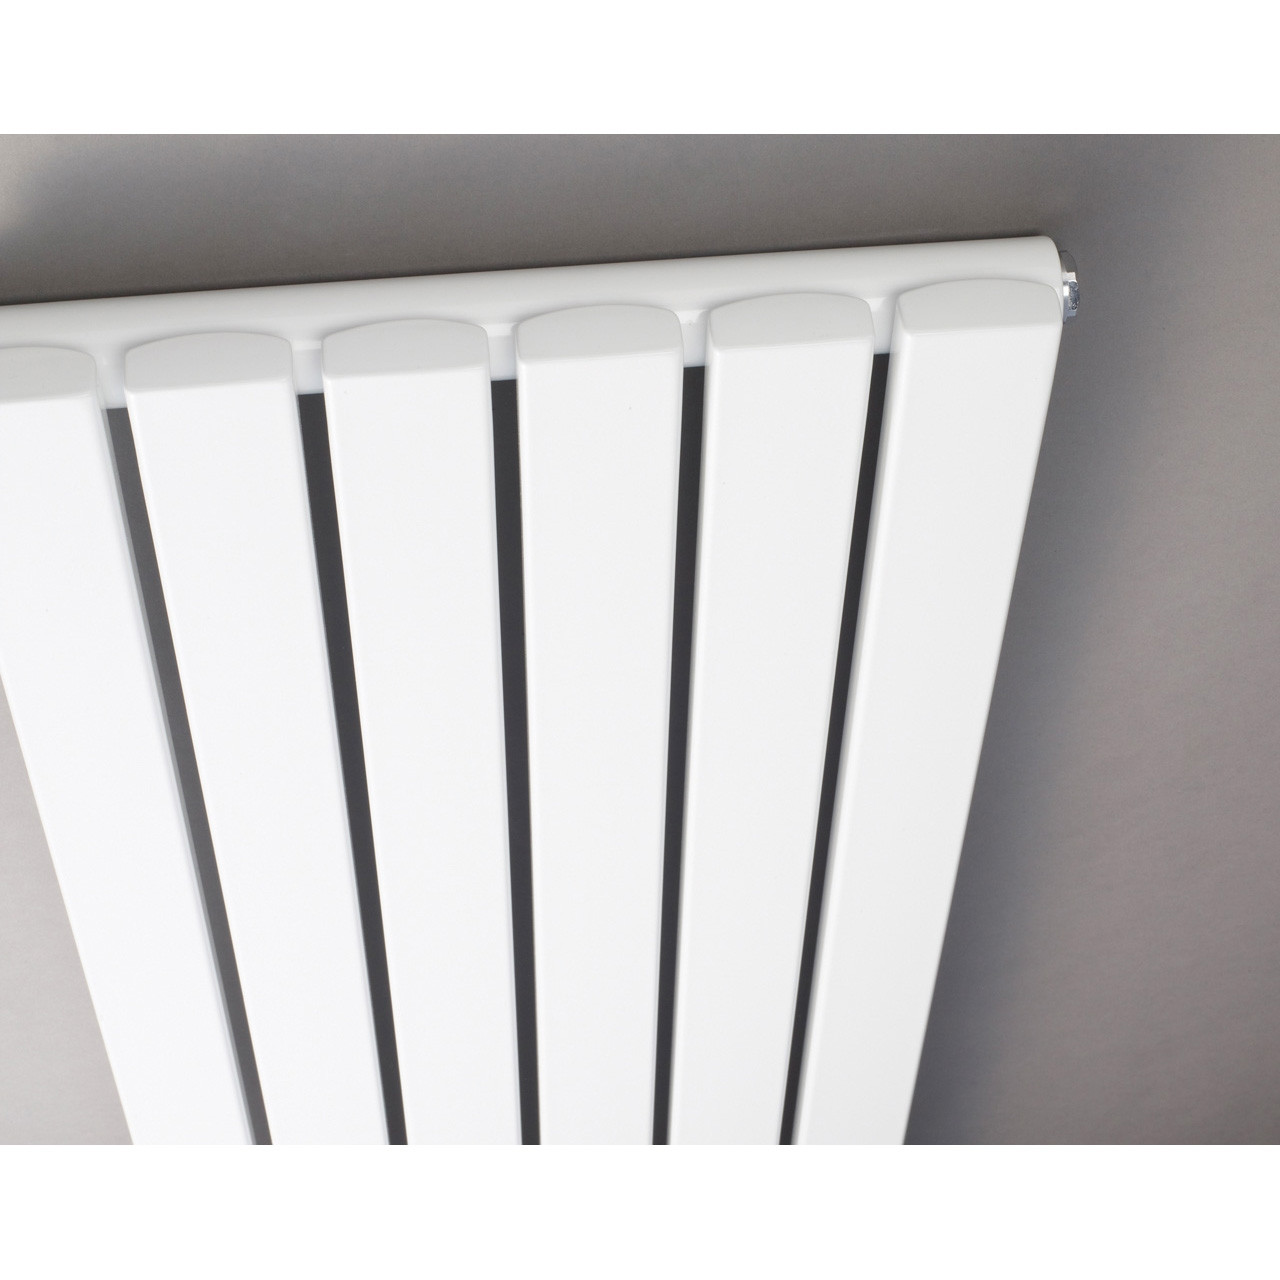 Hudson Reed Sloane Single Panel Radiator 1500mm x 354mm - HLW41